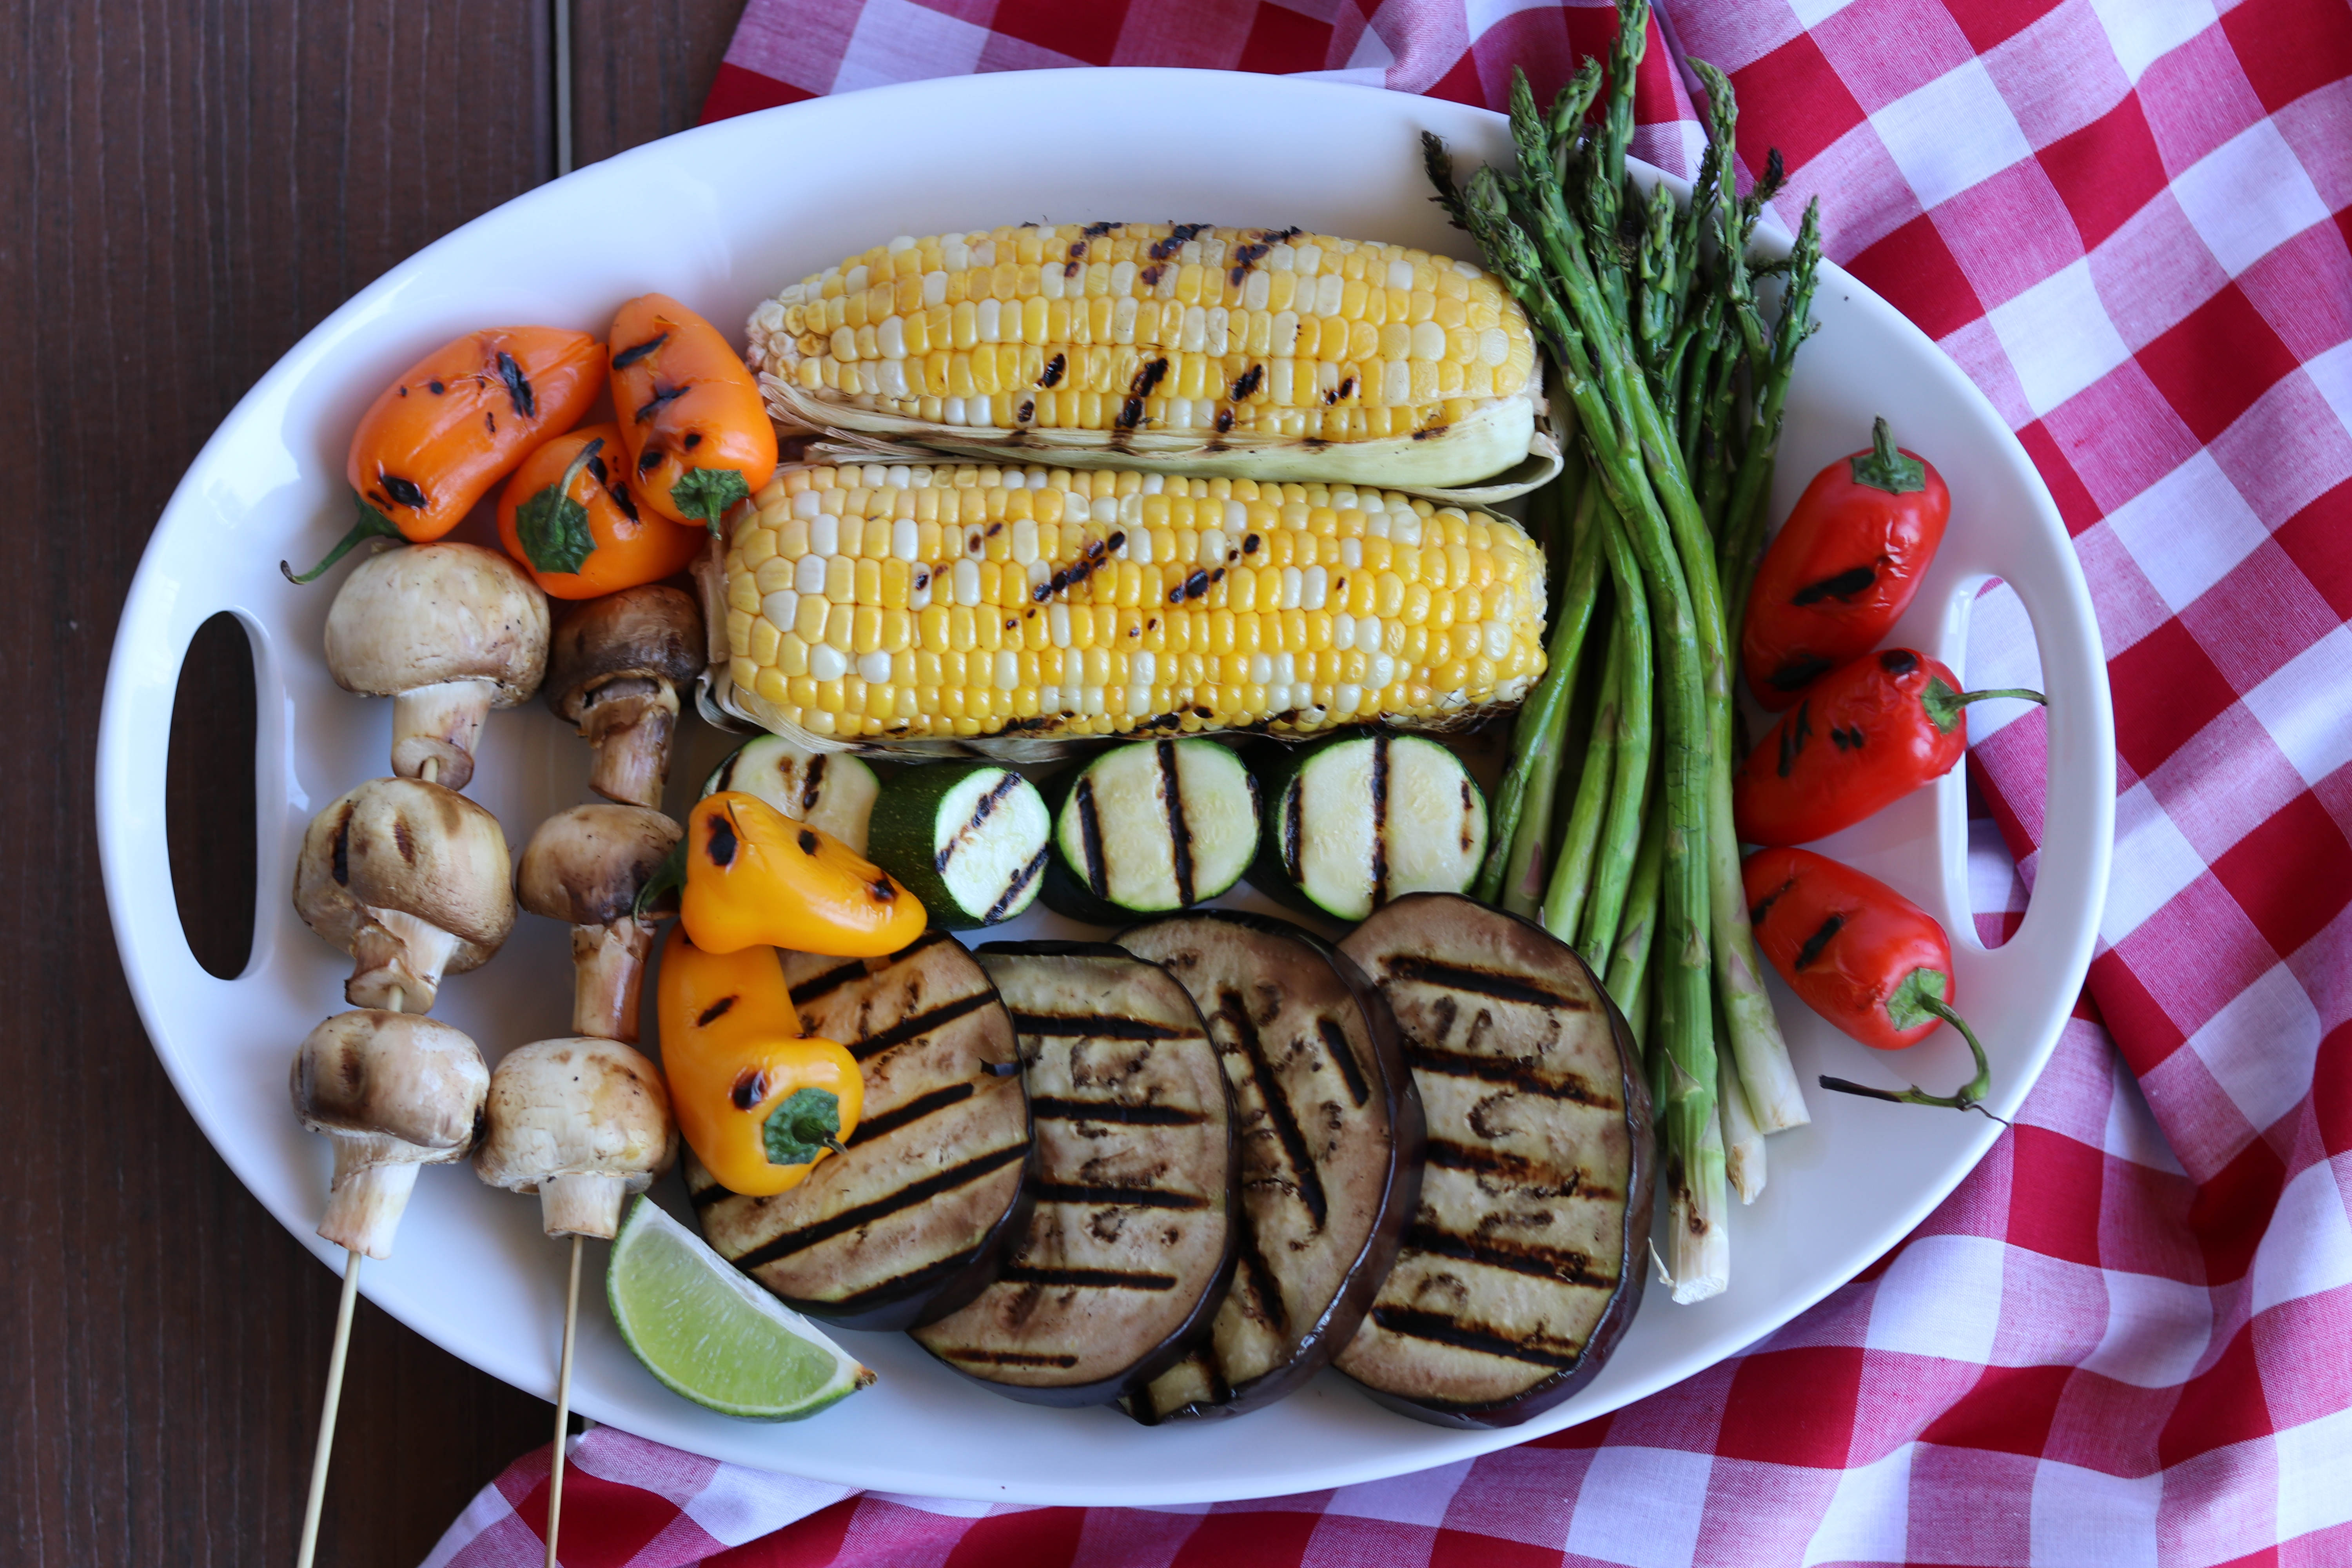 Image of grilled corn, mushrooms, and more vegetables.